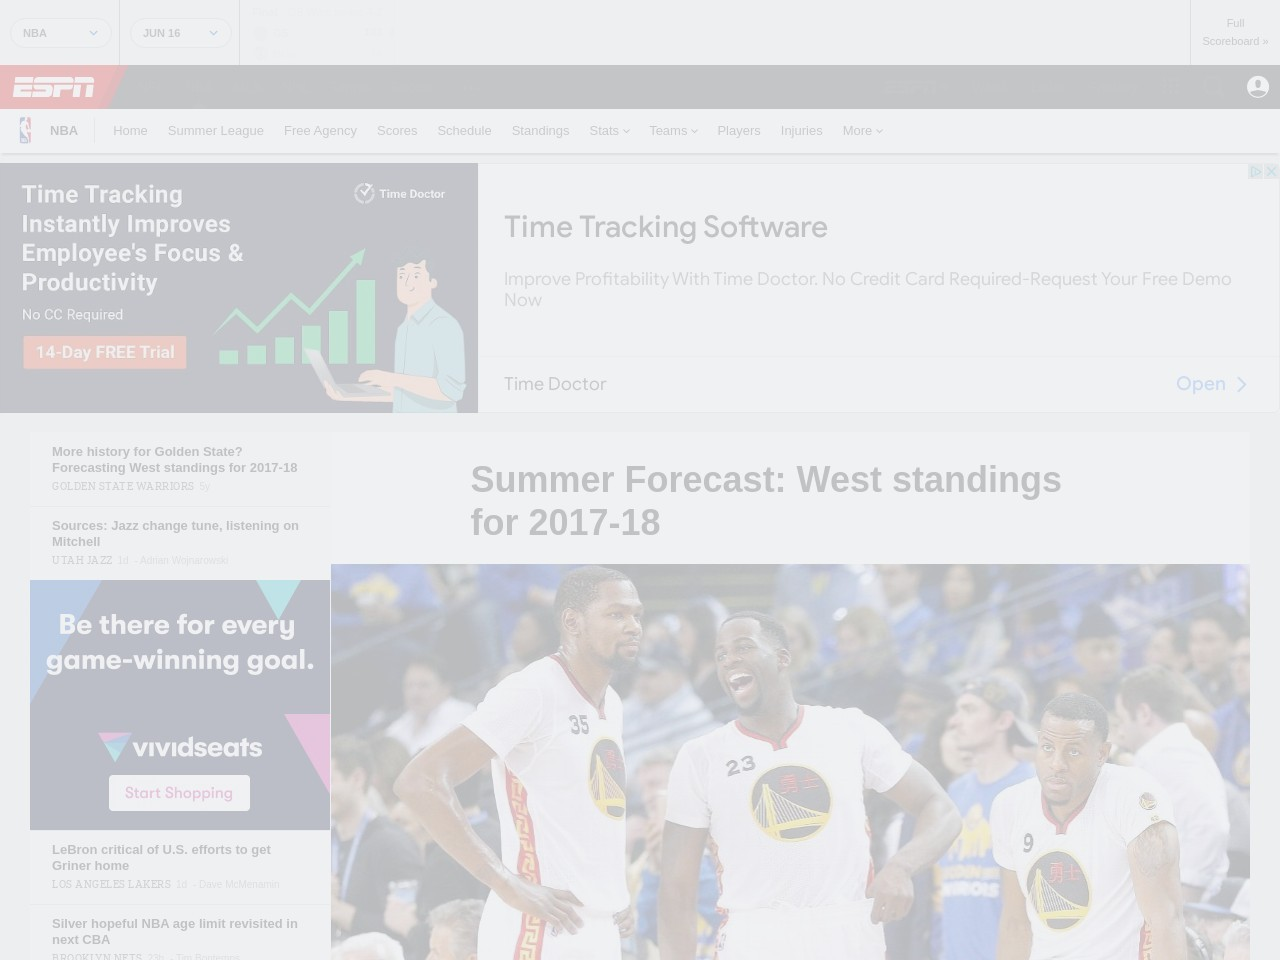 Forecasting West standings for 2017-18